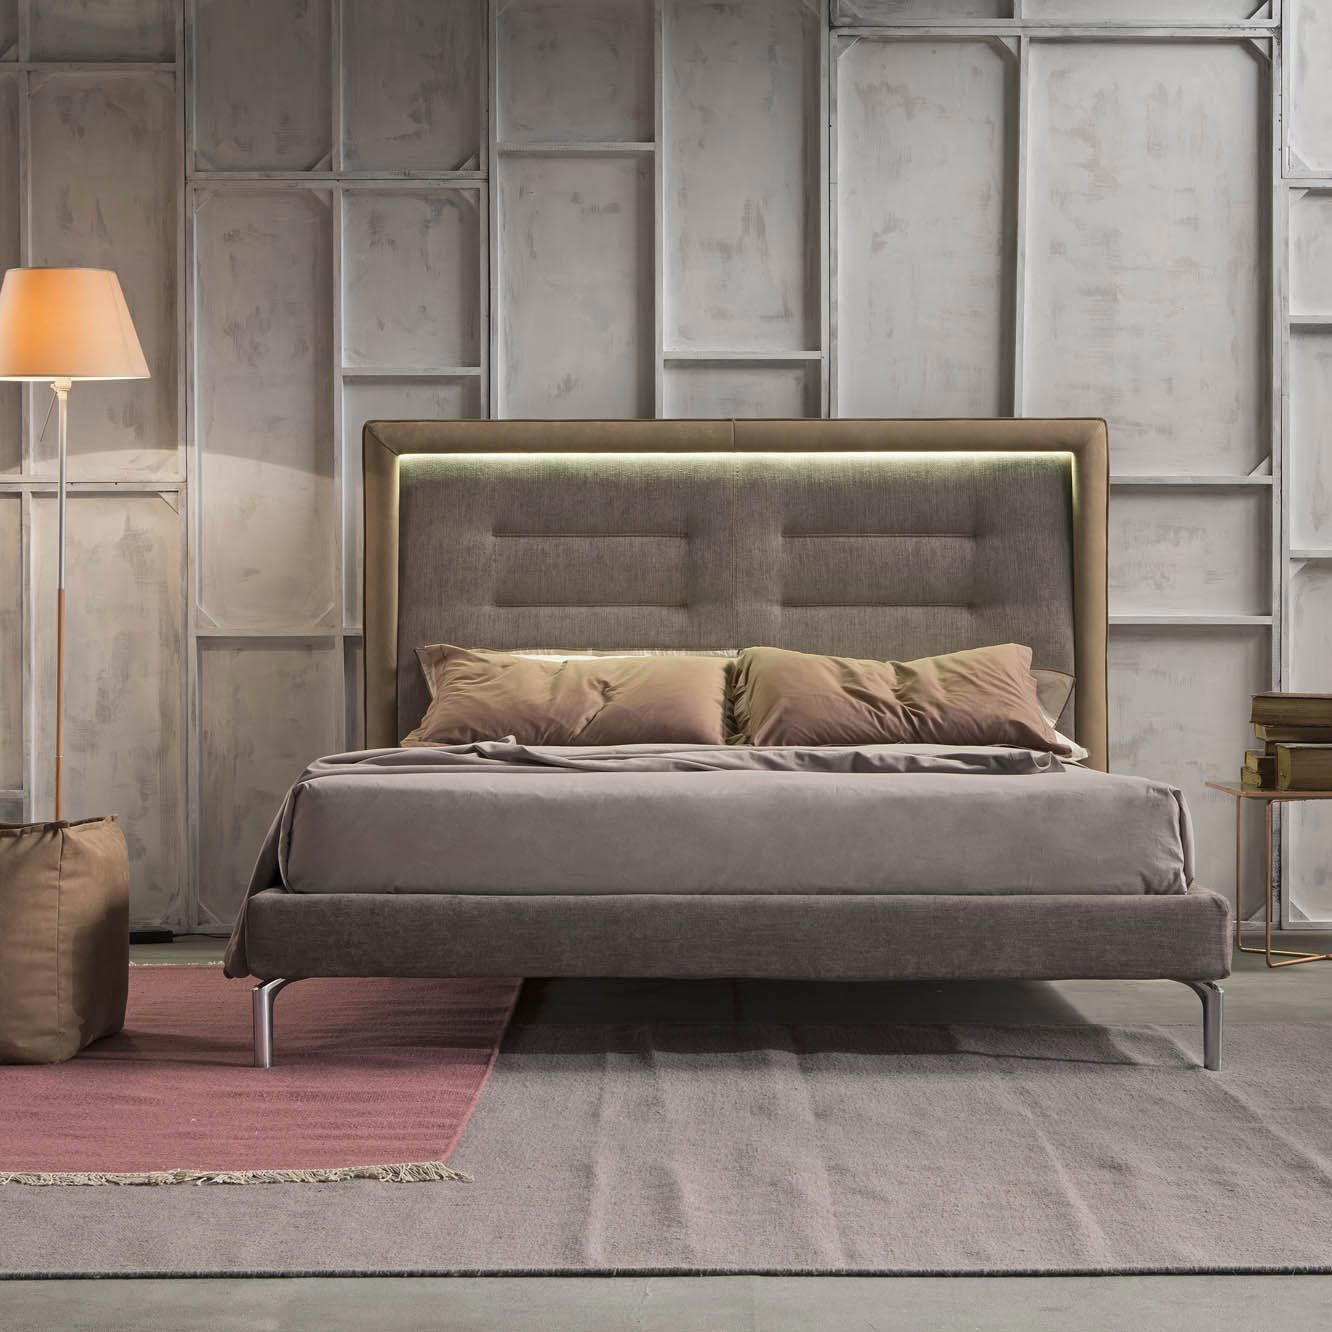 Double Bed Contemporary Upholstered With Headboard